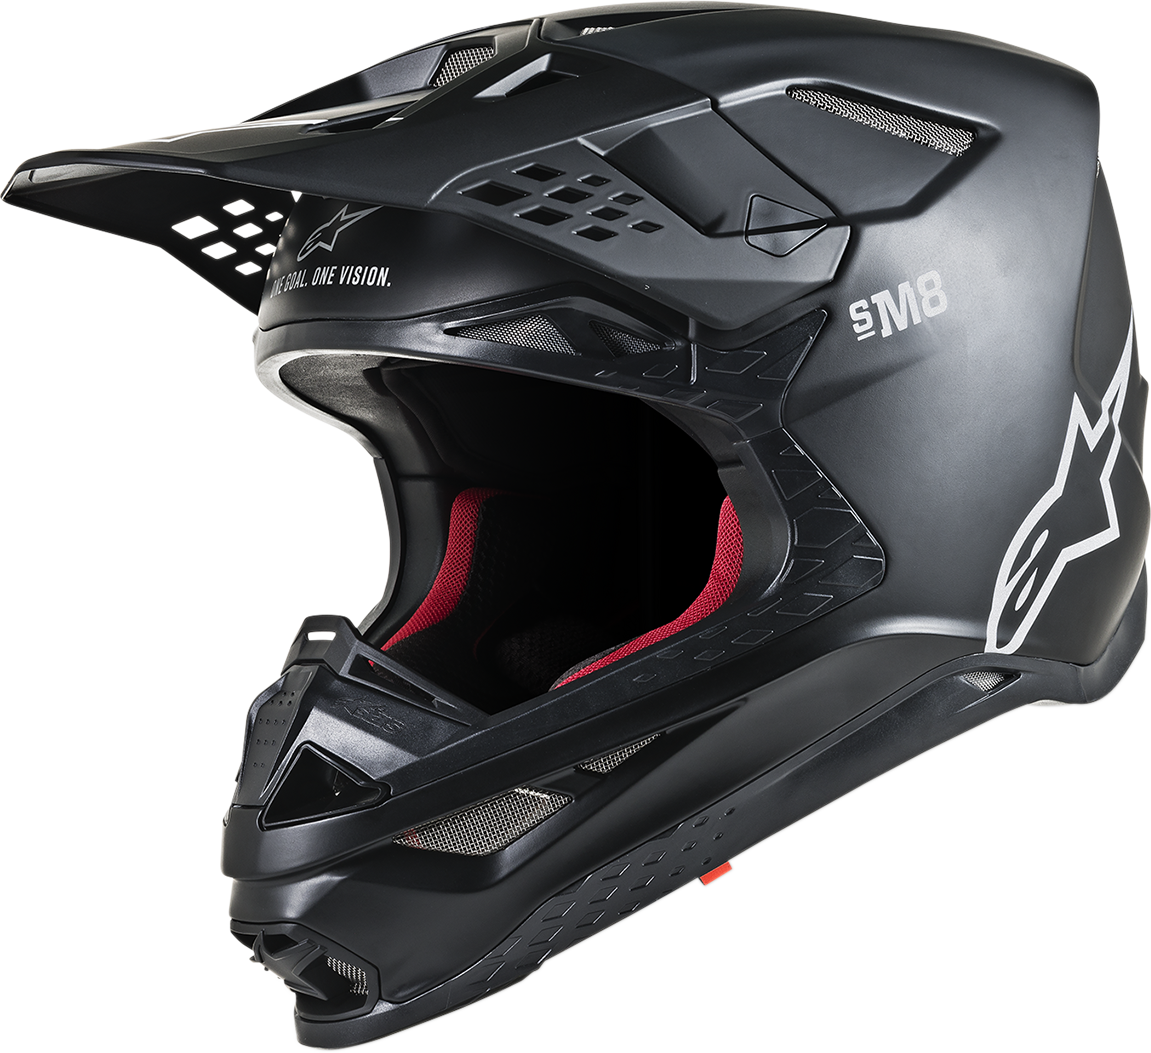 Alpinestars Supertech M8 Offroad ATV UTV Riding Dirt Bike Full Face Helmet